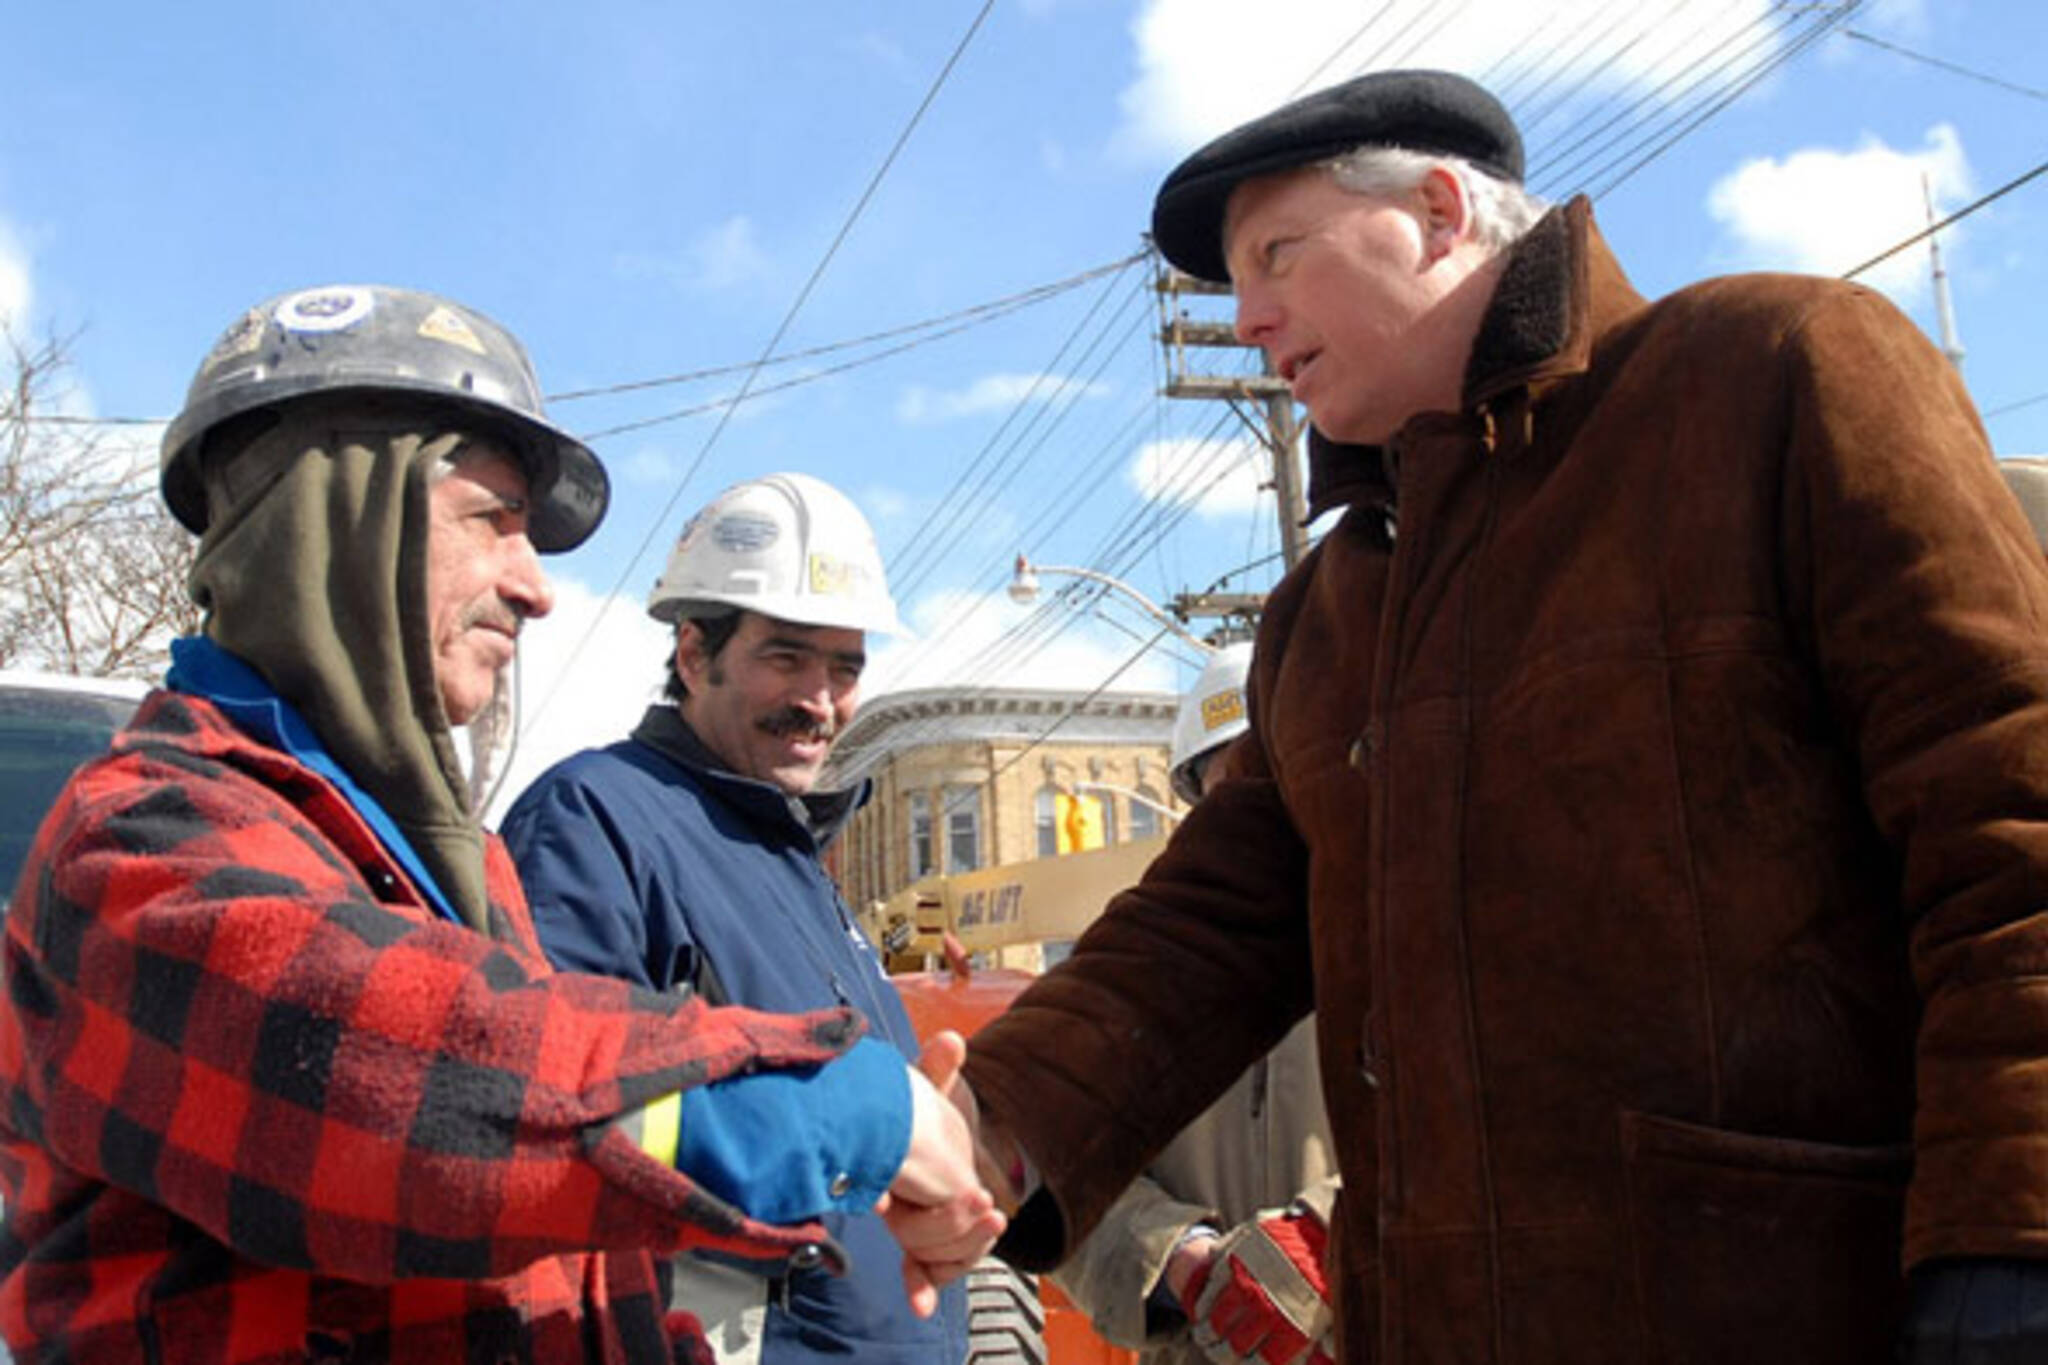 mayor miller and workers at fire